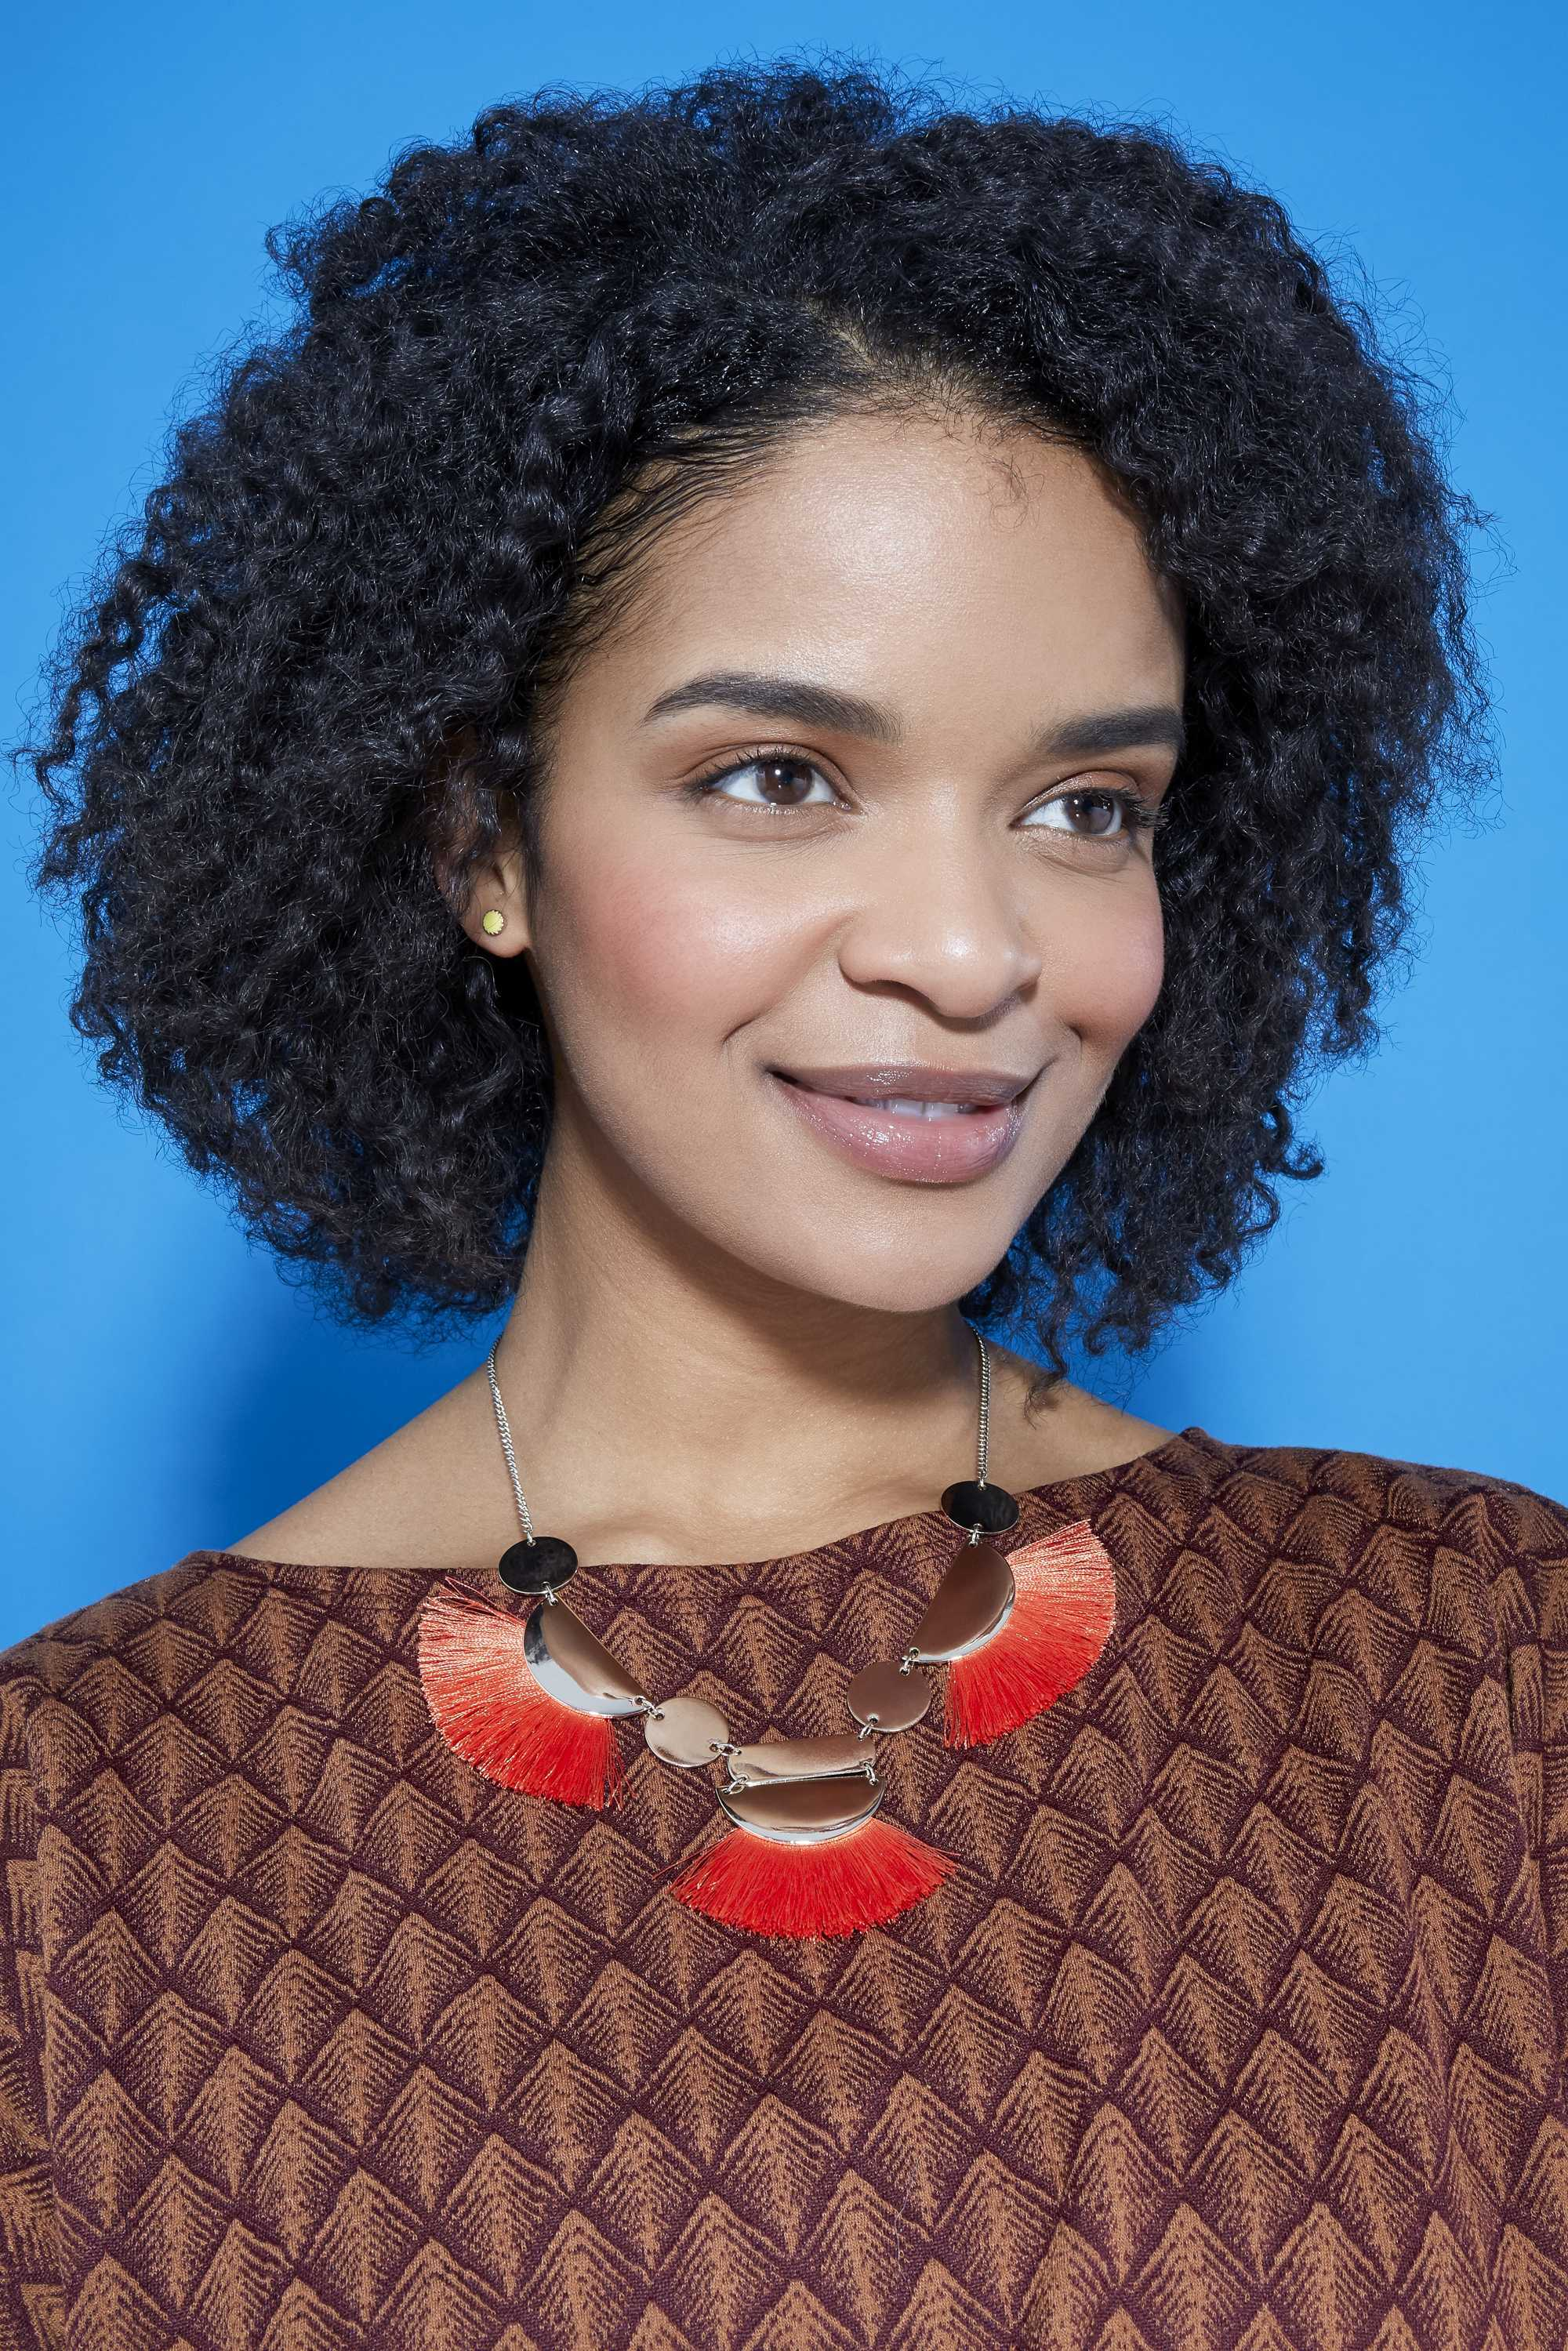 Easy natural hairstyles: Close up shot of woman with braid out hairstyle in studio wearing brown pattern top and red necklace.